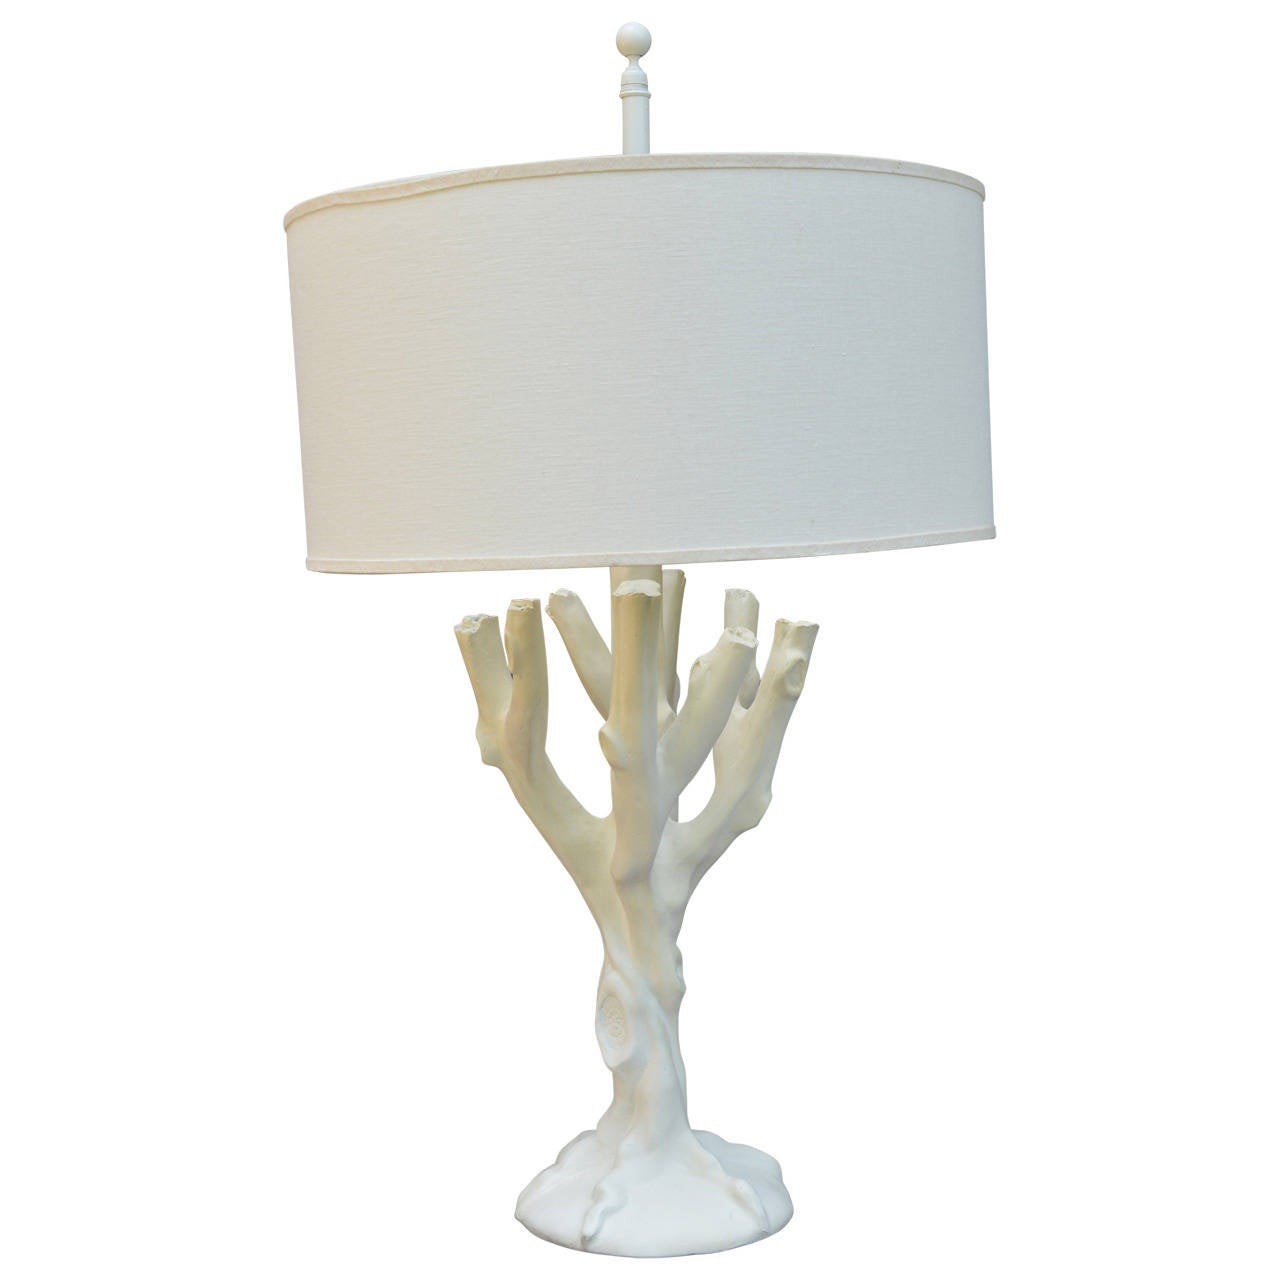 Beautiful faux bois tree form lamp in the style of John Dickinson. Original finial, shown with linen drum shade, not included.